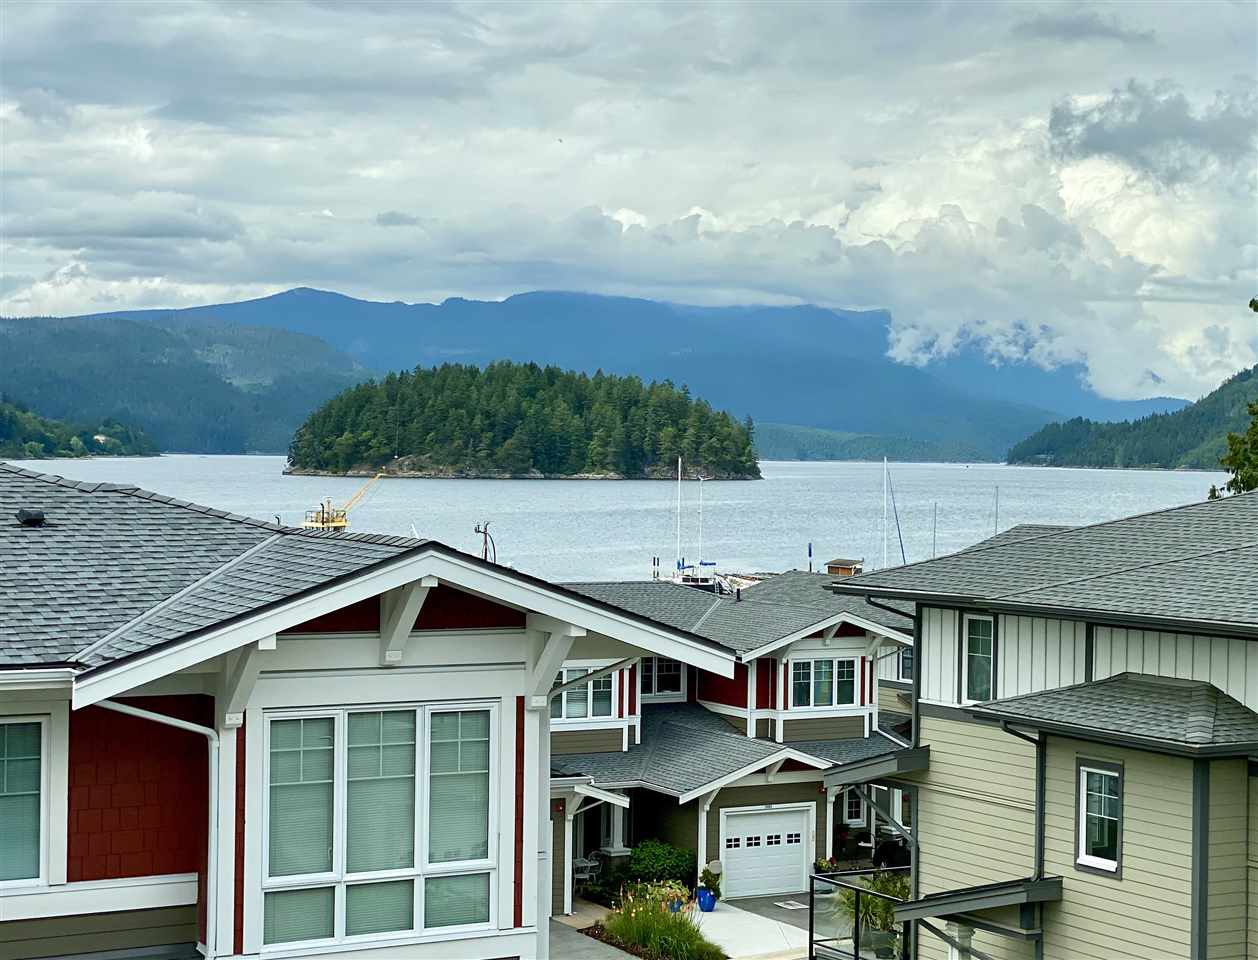 """Main Photo: 5974 OLDMILL Lane in Sechelt: Sechelt District Townhouse for sale in """"EDGEWATER"""" (Sunshine Coast)  : MLS®# R2464884"""